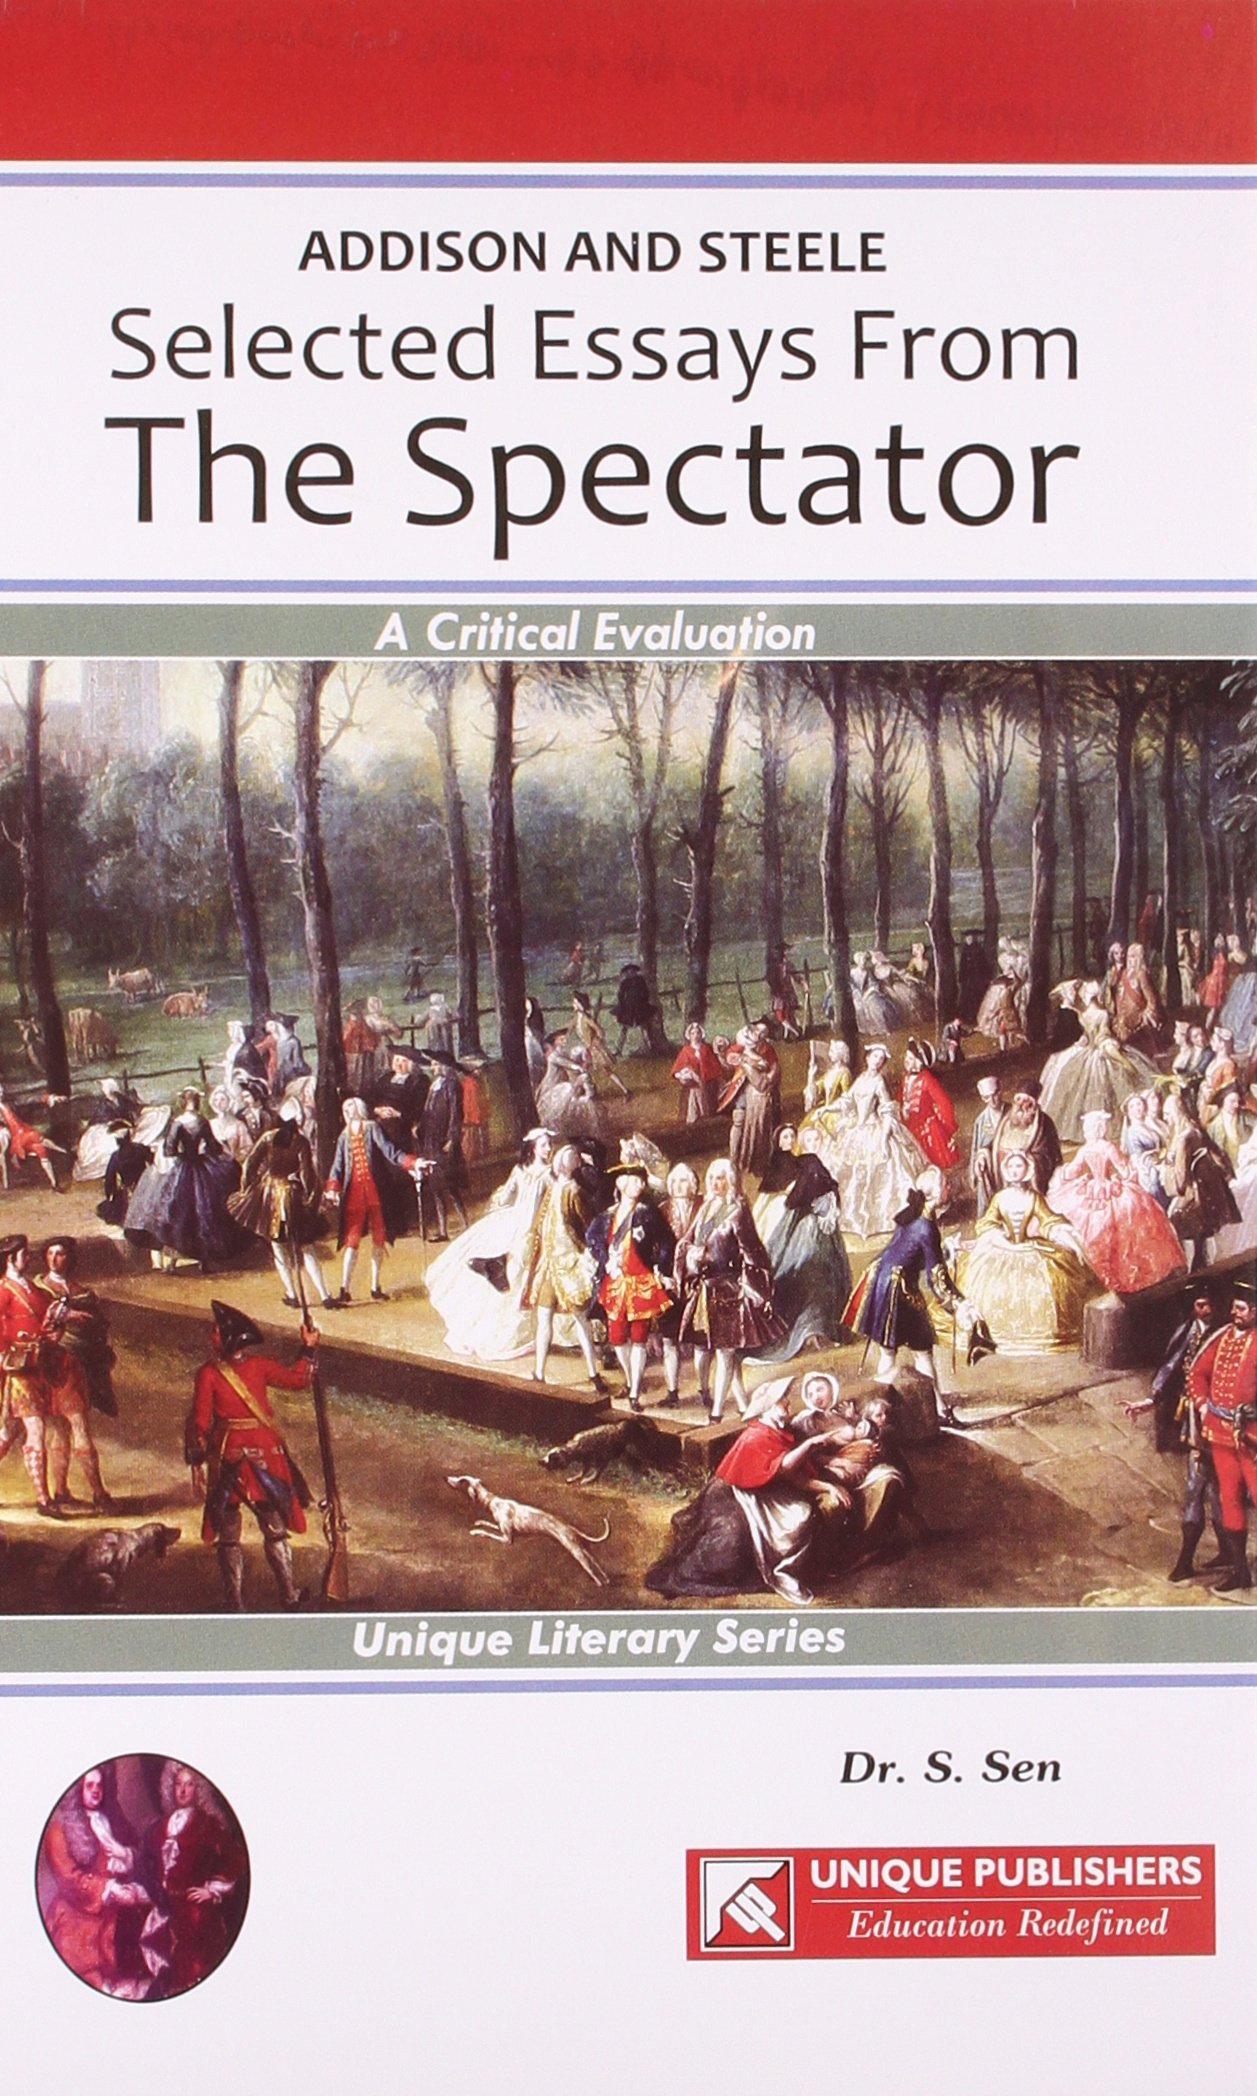 buy addison steele selected essays from the spectator book buy addison steele selected essays from the spectator book online at low prices in addison steele selected essays from the spectator reviews